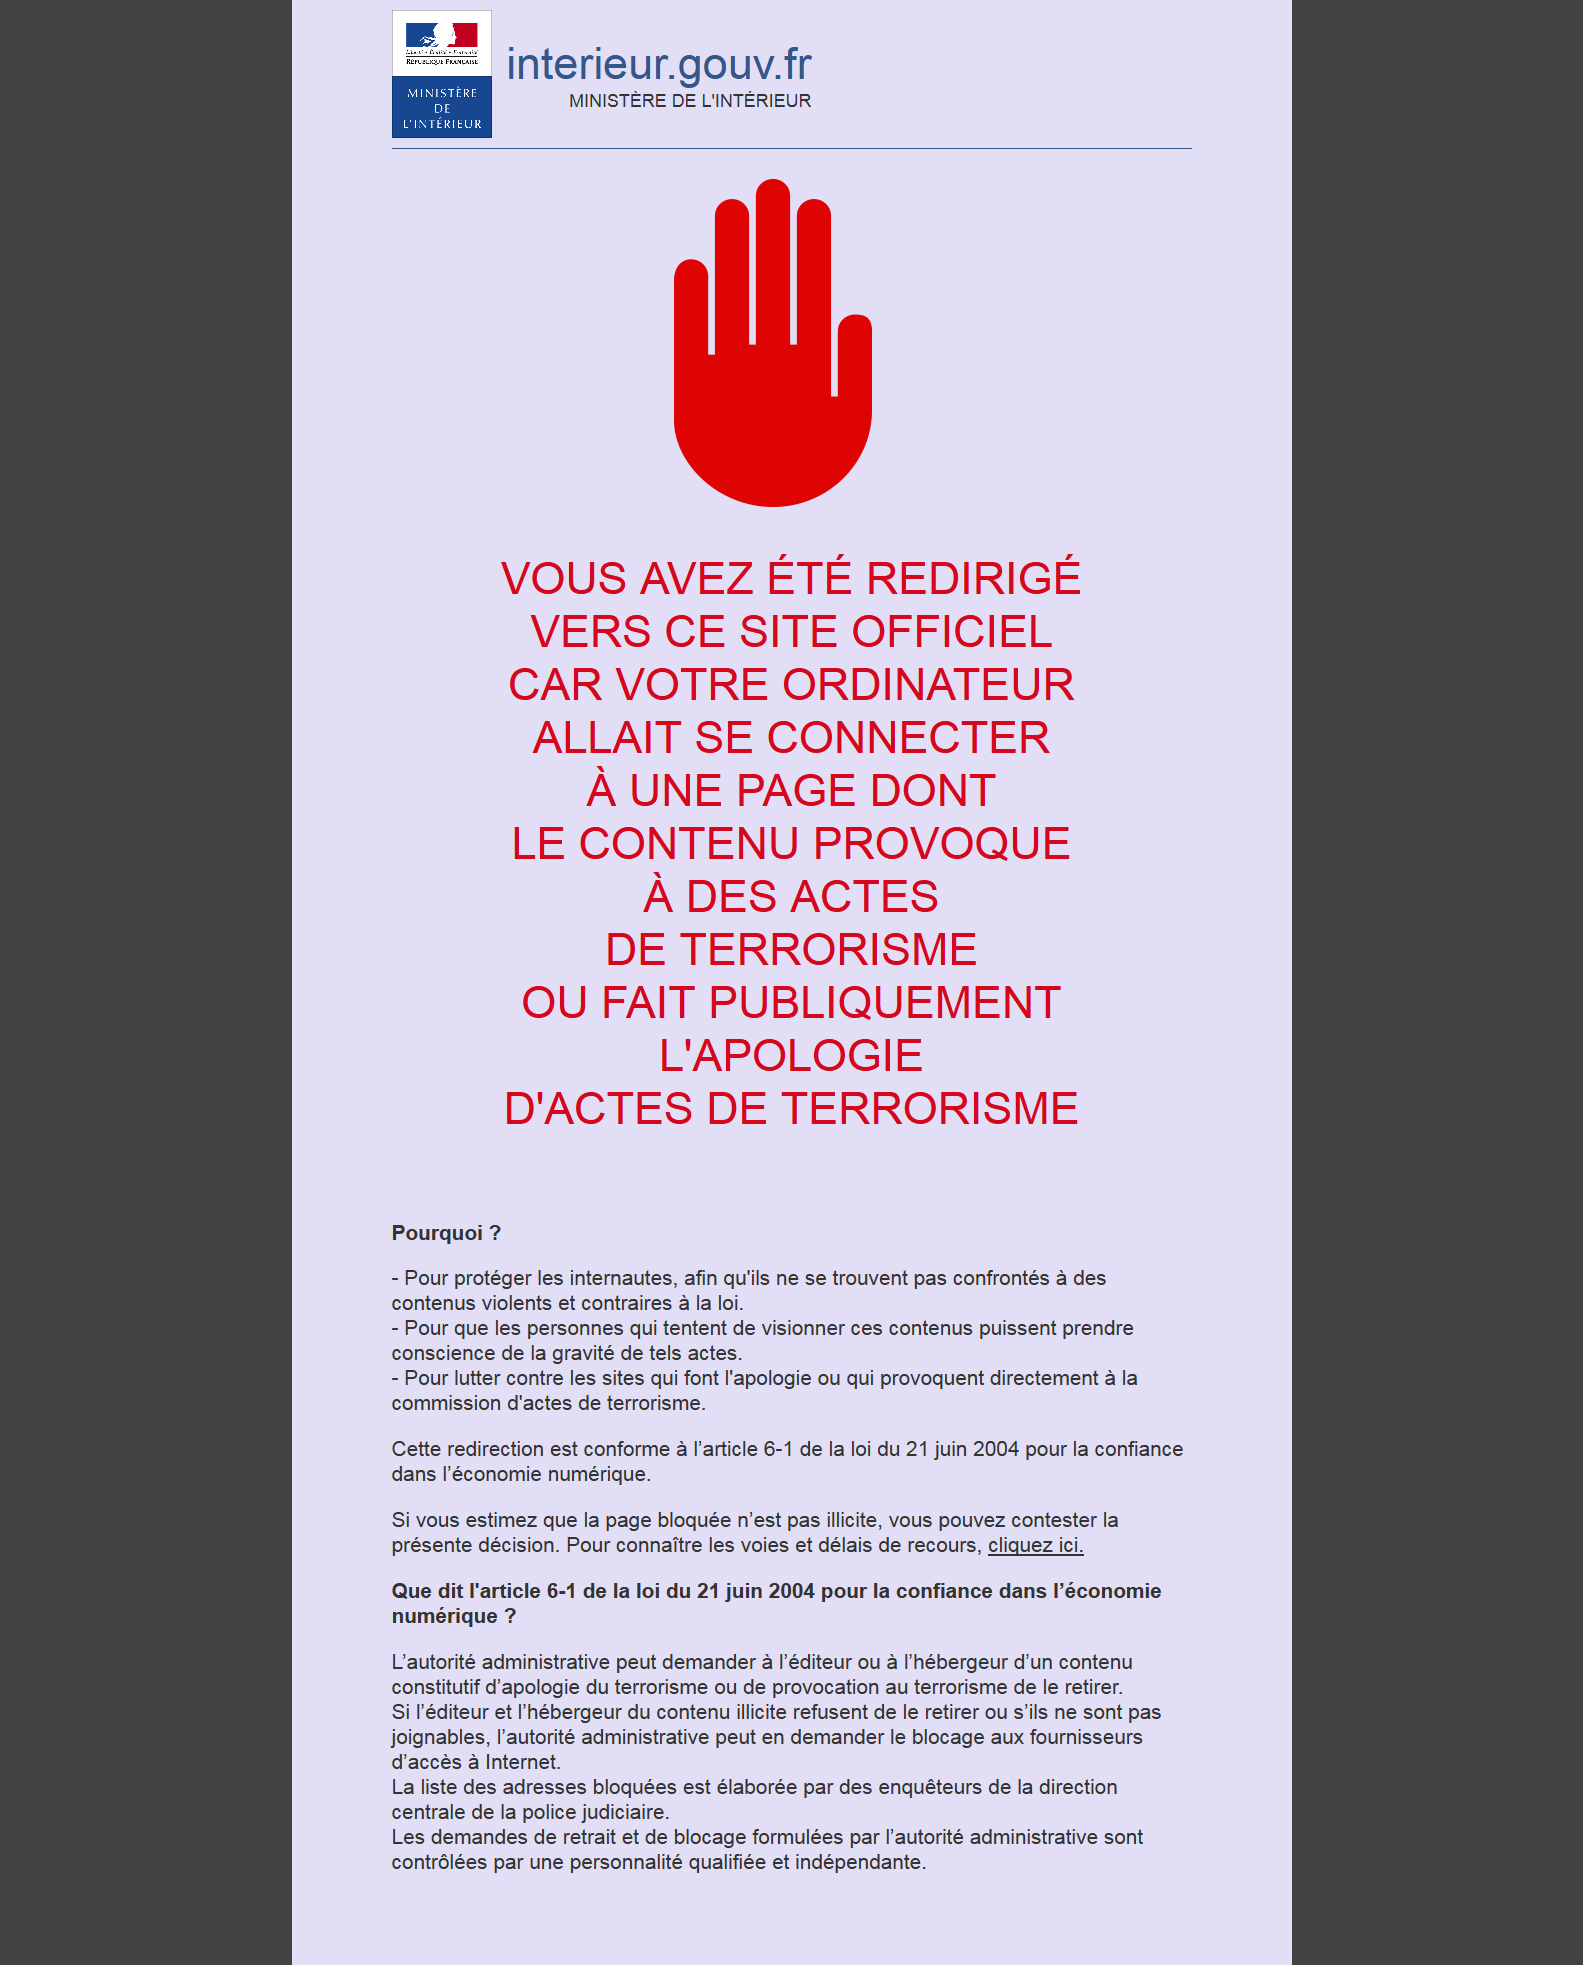 https://api.arretsurimages.net/api/public/media/message-derreur-sites-bloqu-s-apologie-du-terrorisme/action/show?format=public&t=2017-10-26T04:20:16+02:00